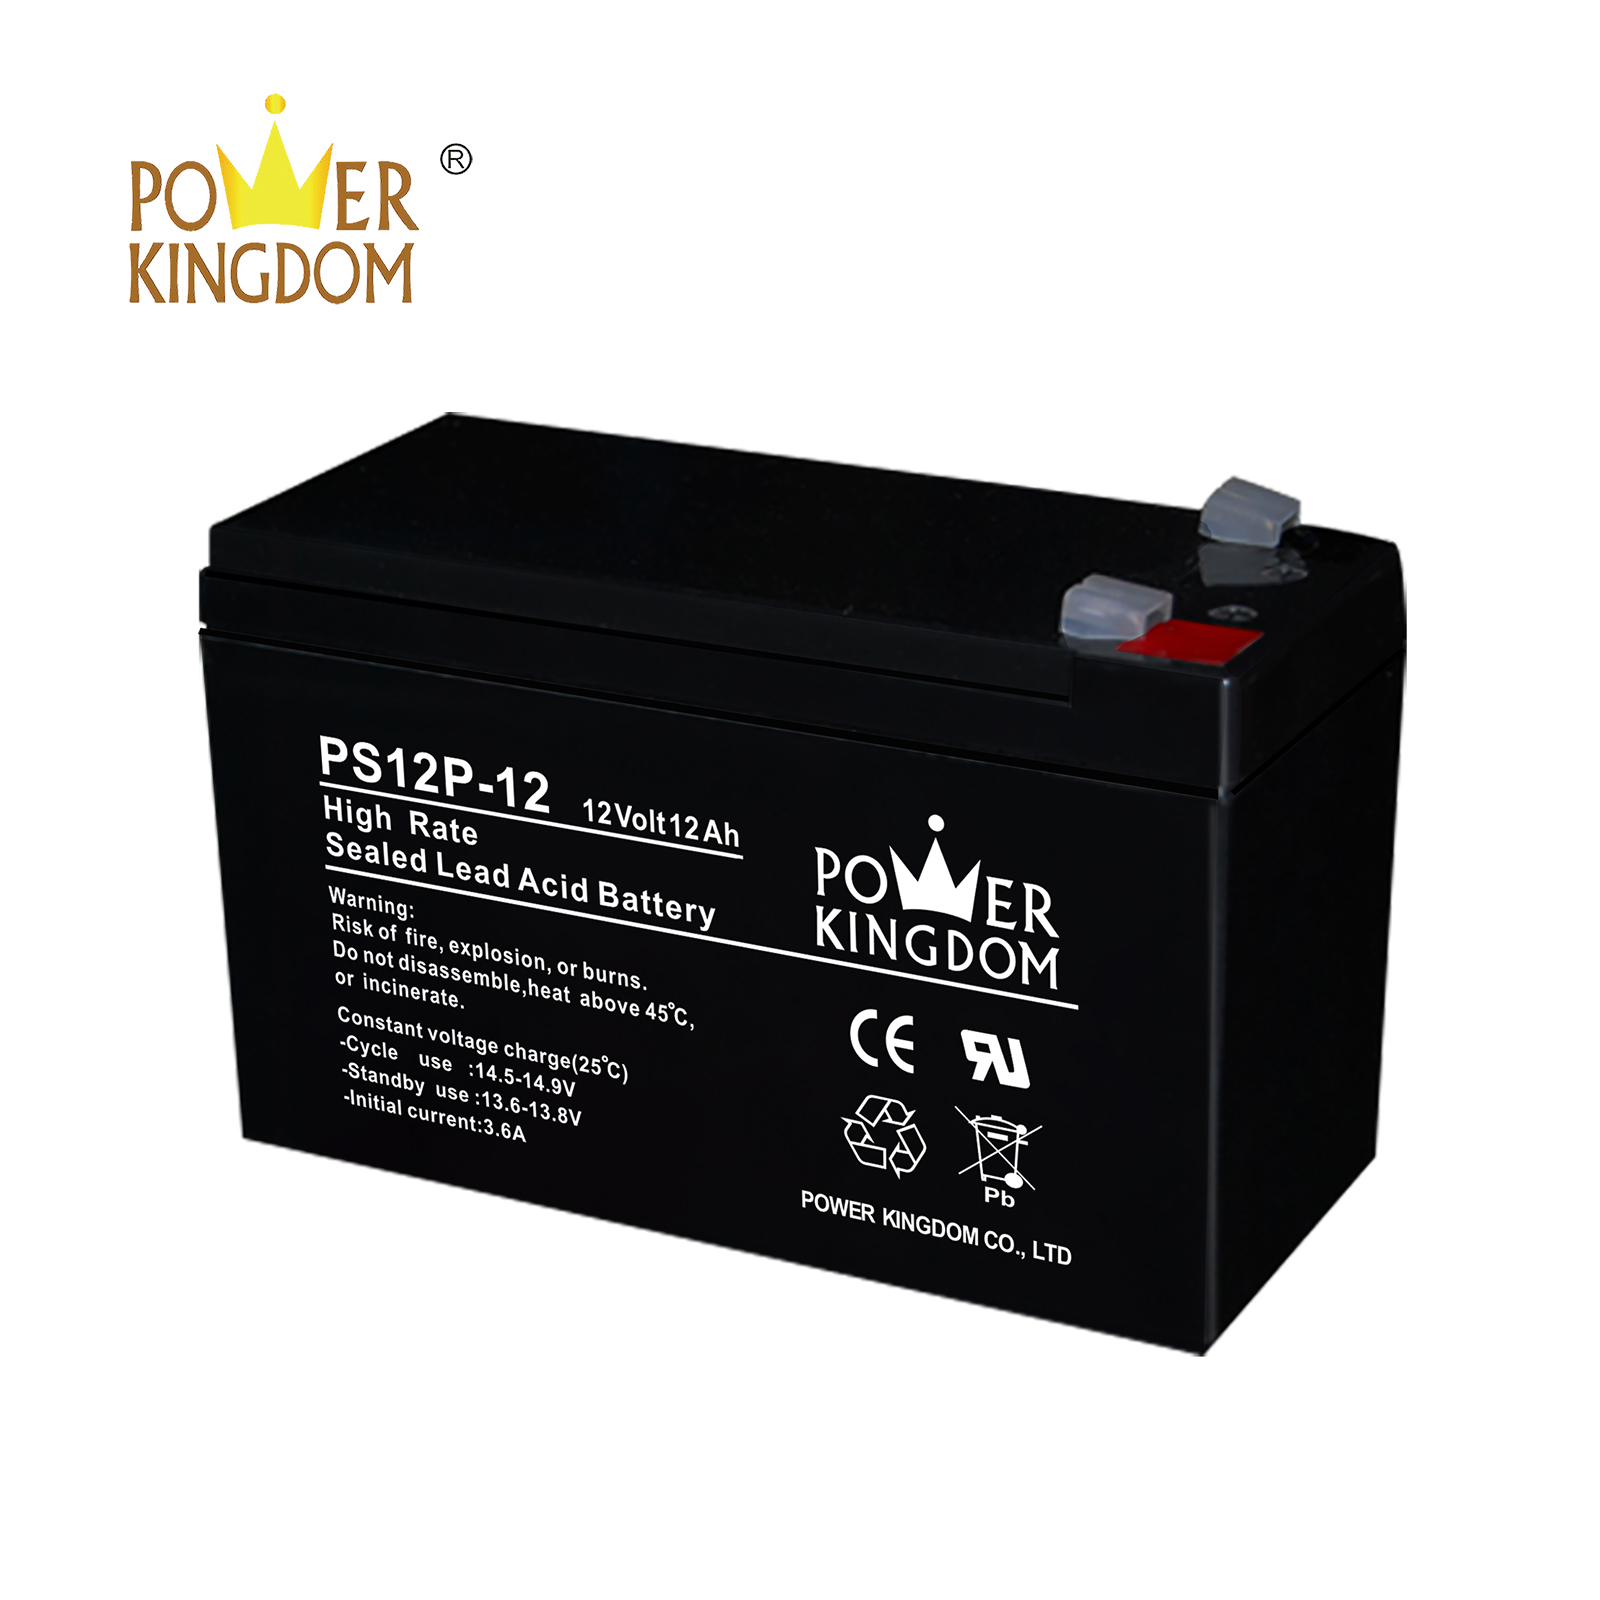 Power Kingdom marine agm battery comparison company fire system-2